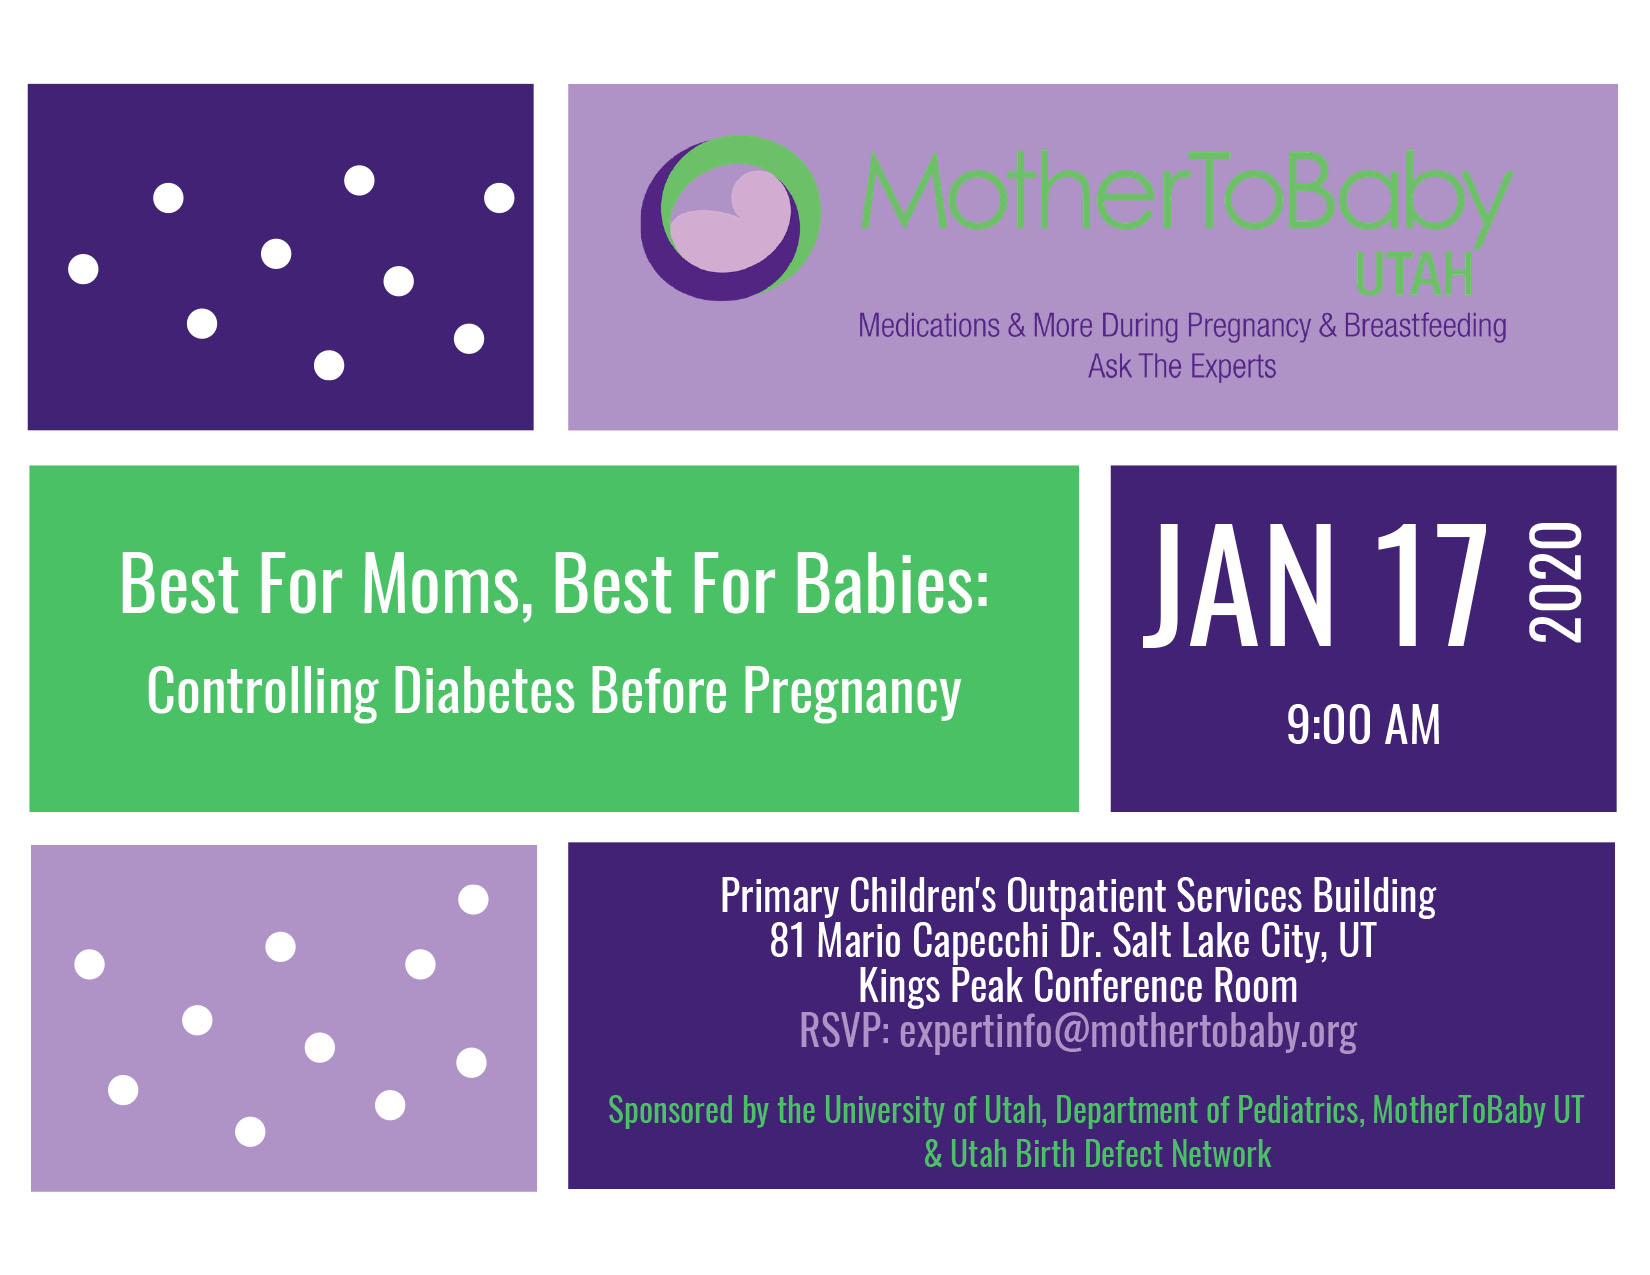 Best for Moms, Best for Babies: Controlling Diabetes Before Pregnancy Invitation.